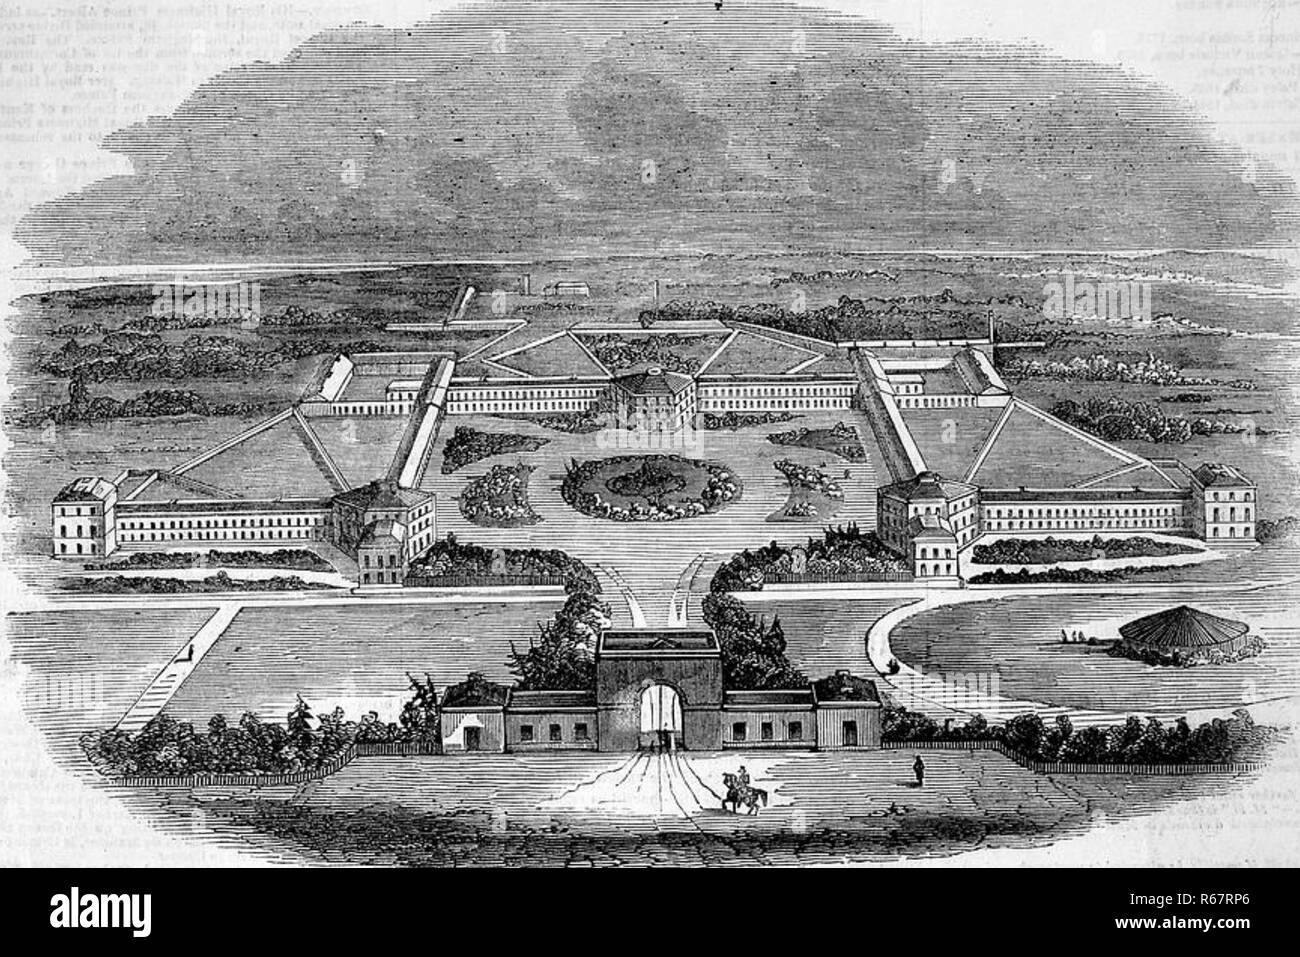 HANWELL INSANE ASYLUM in Southall,  north London, about 1840. Now the St. Bernard's Hospital. - Stock Image